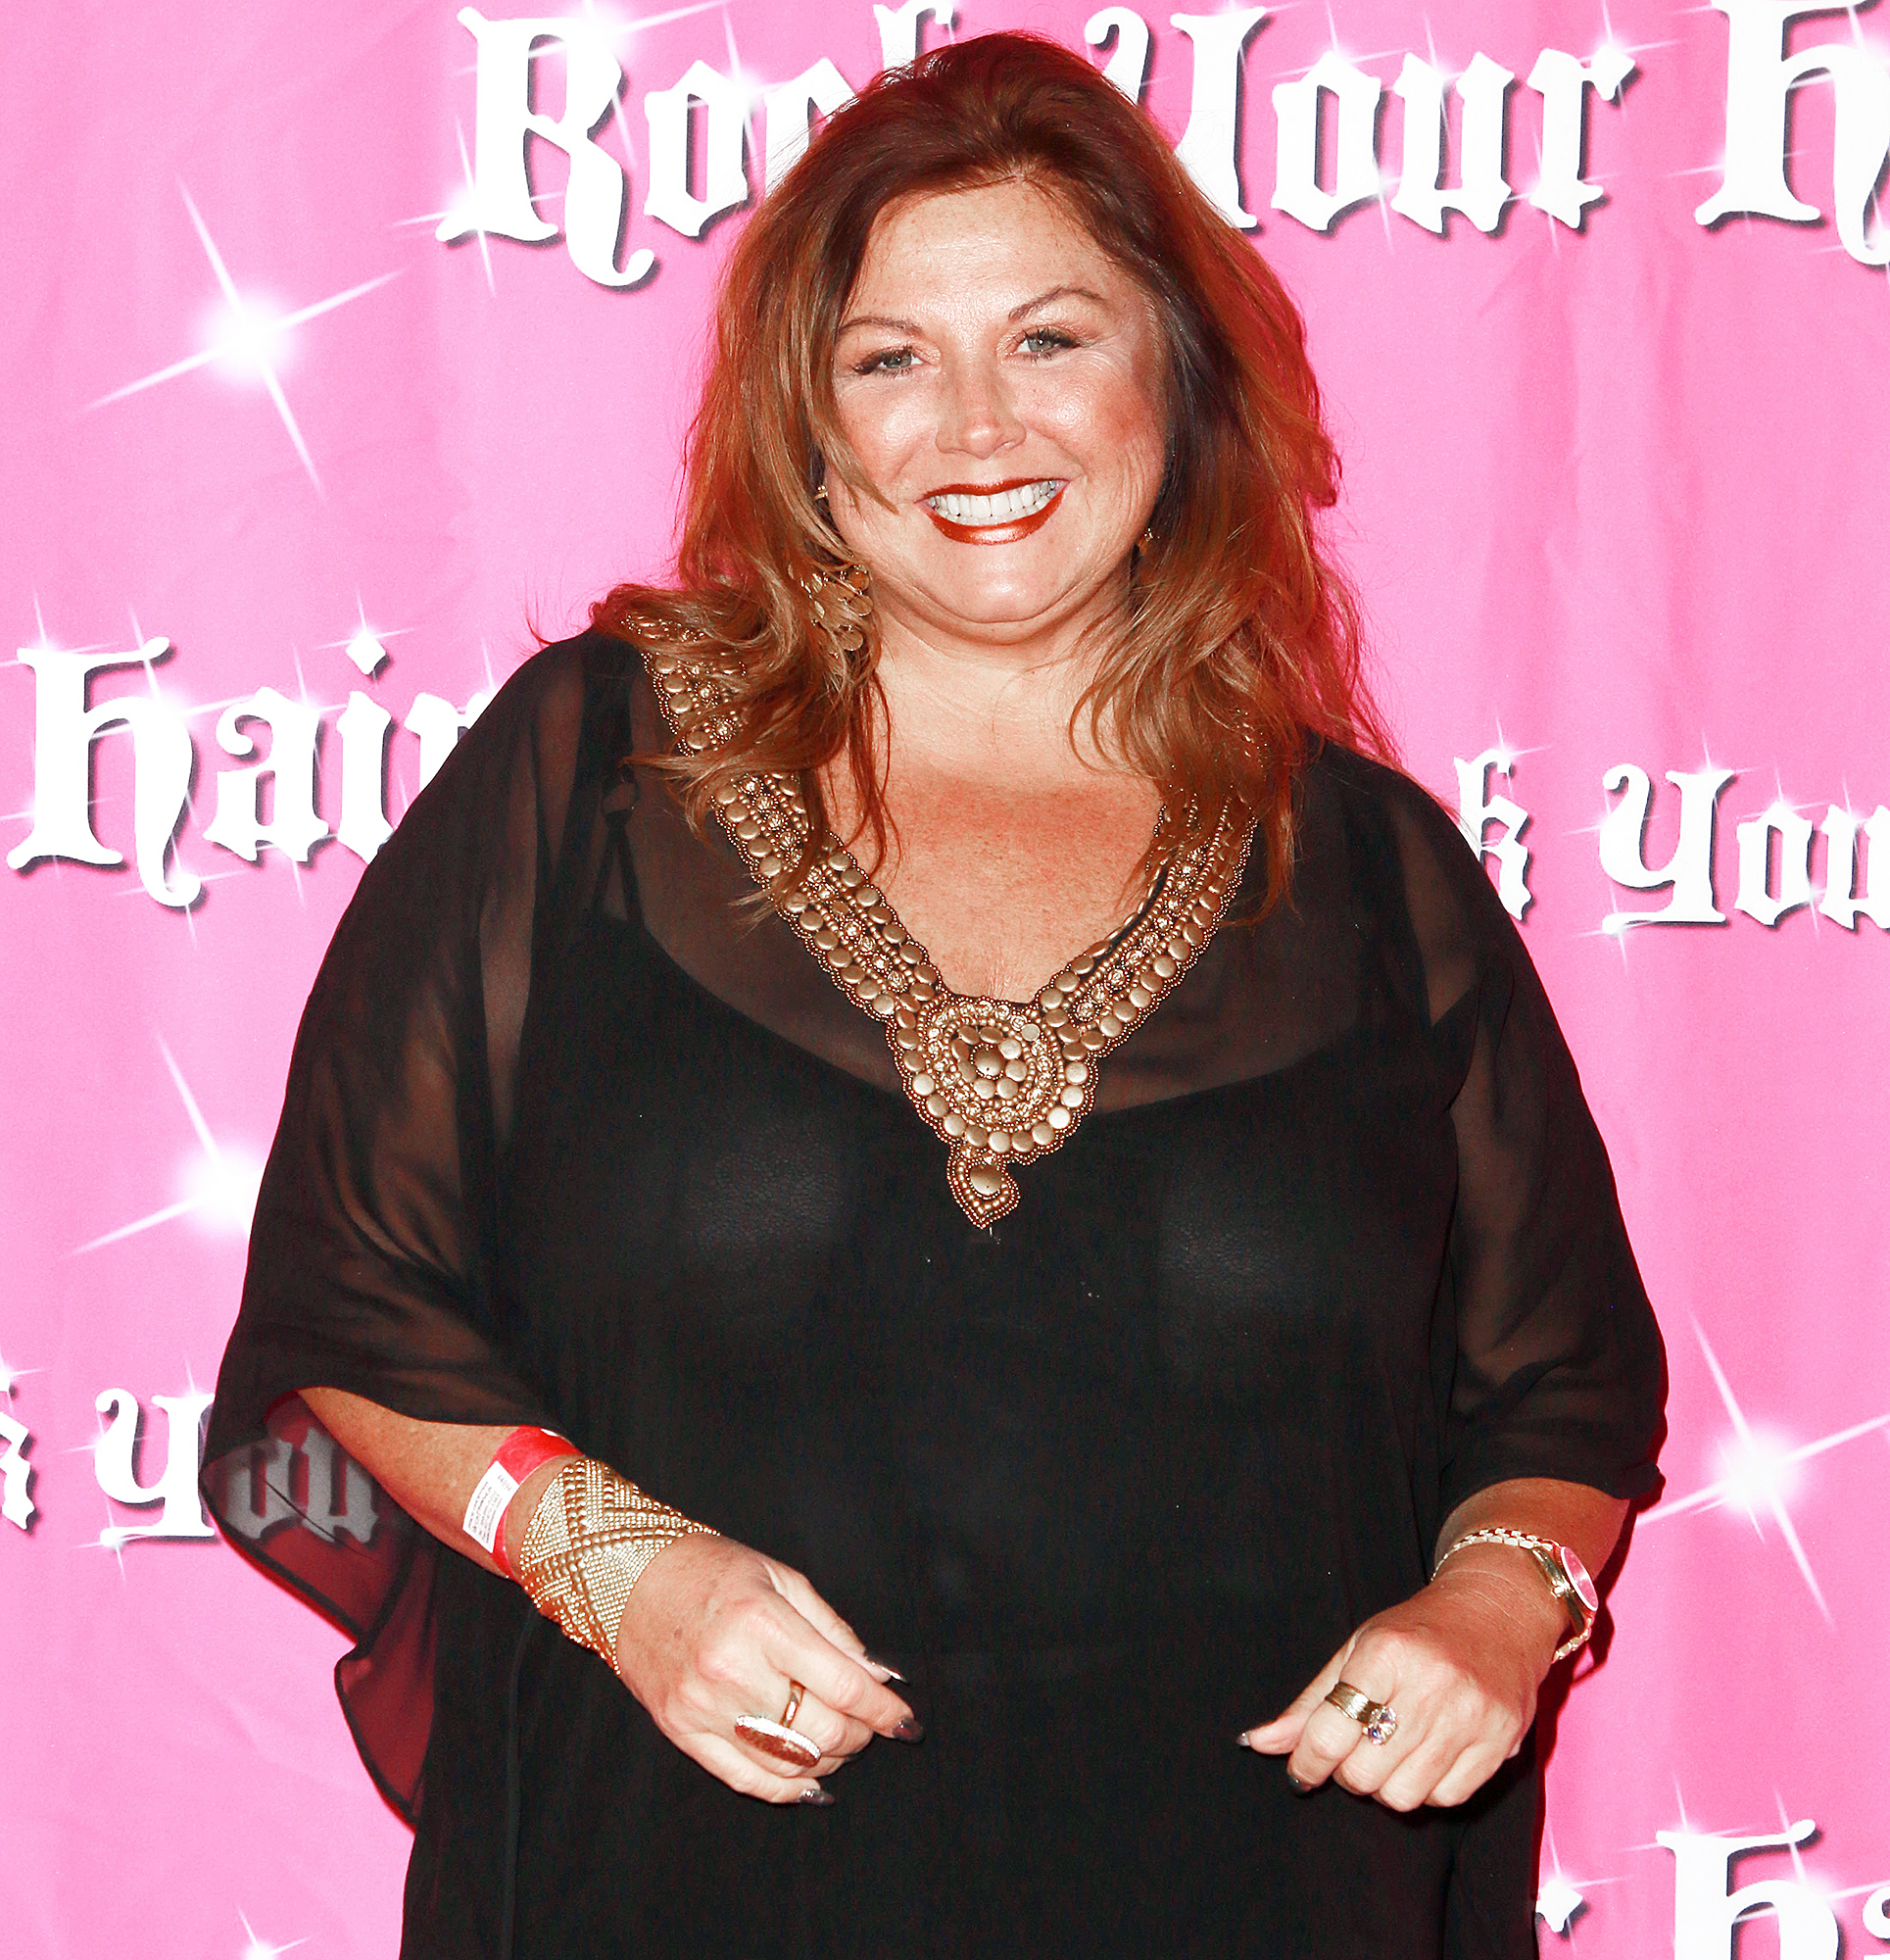 Abby Lee Miller posts photo from hospital after cancer diagnosis